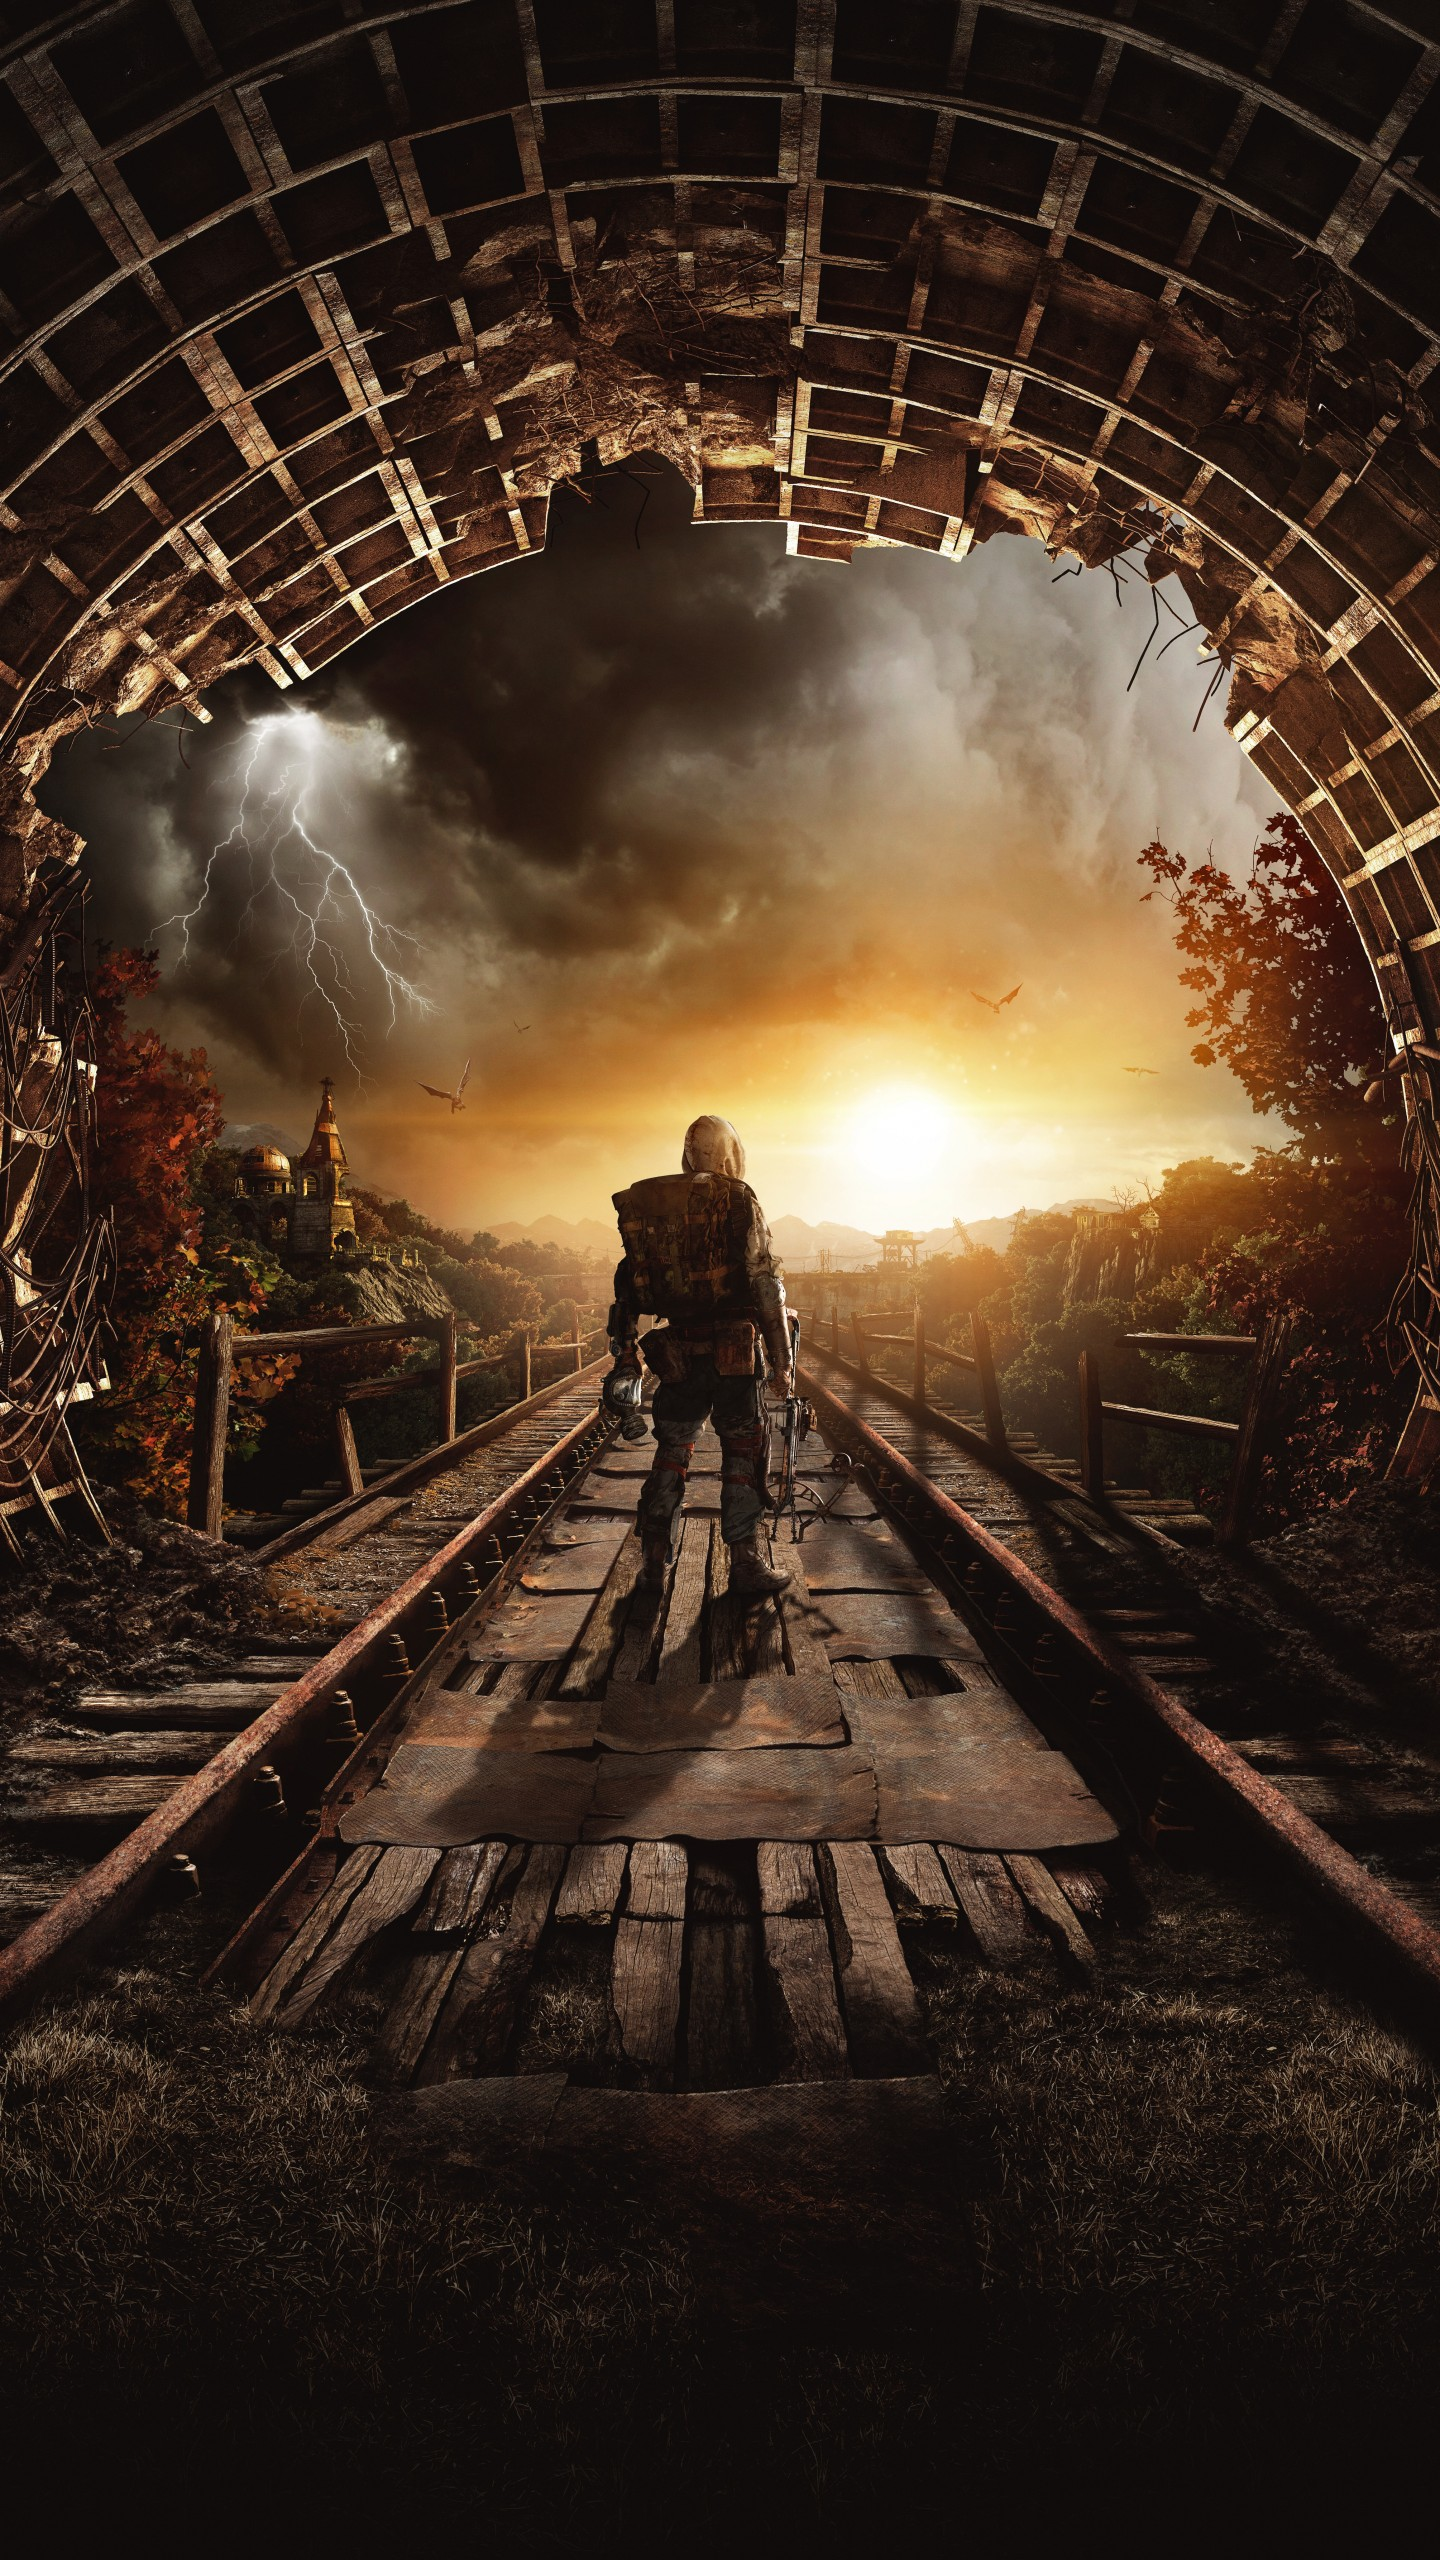 Wallpaper Metro Exodus Autumn Gamescom 2018 Artwork